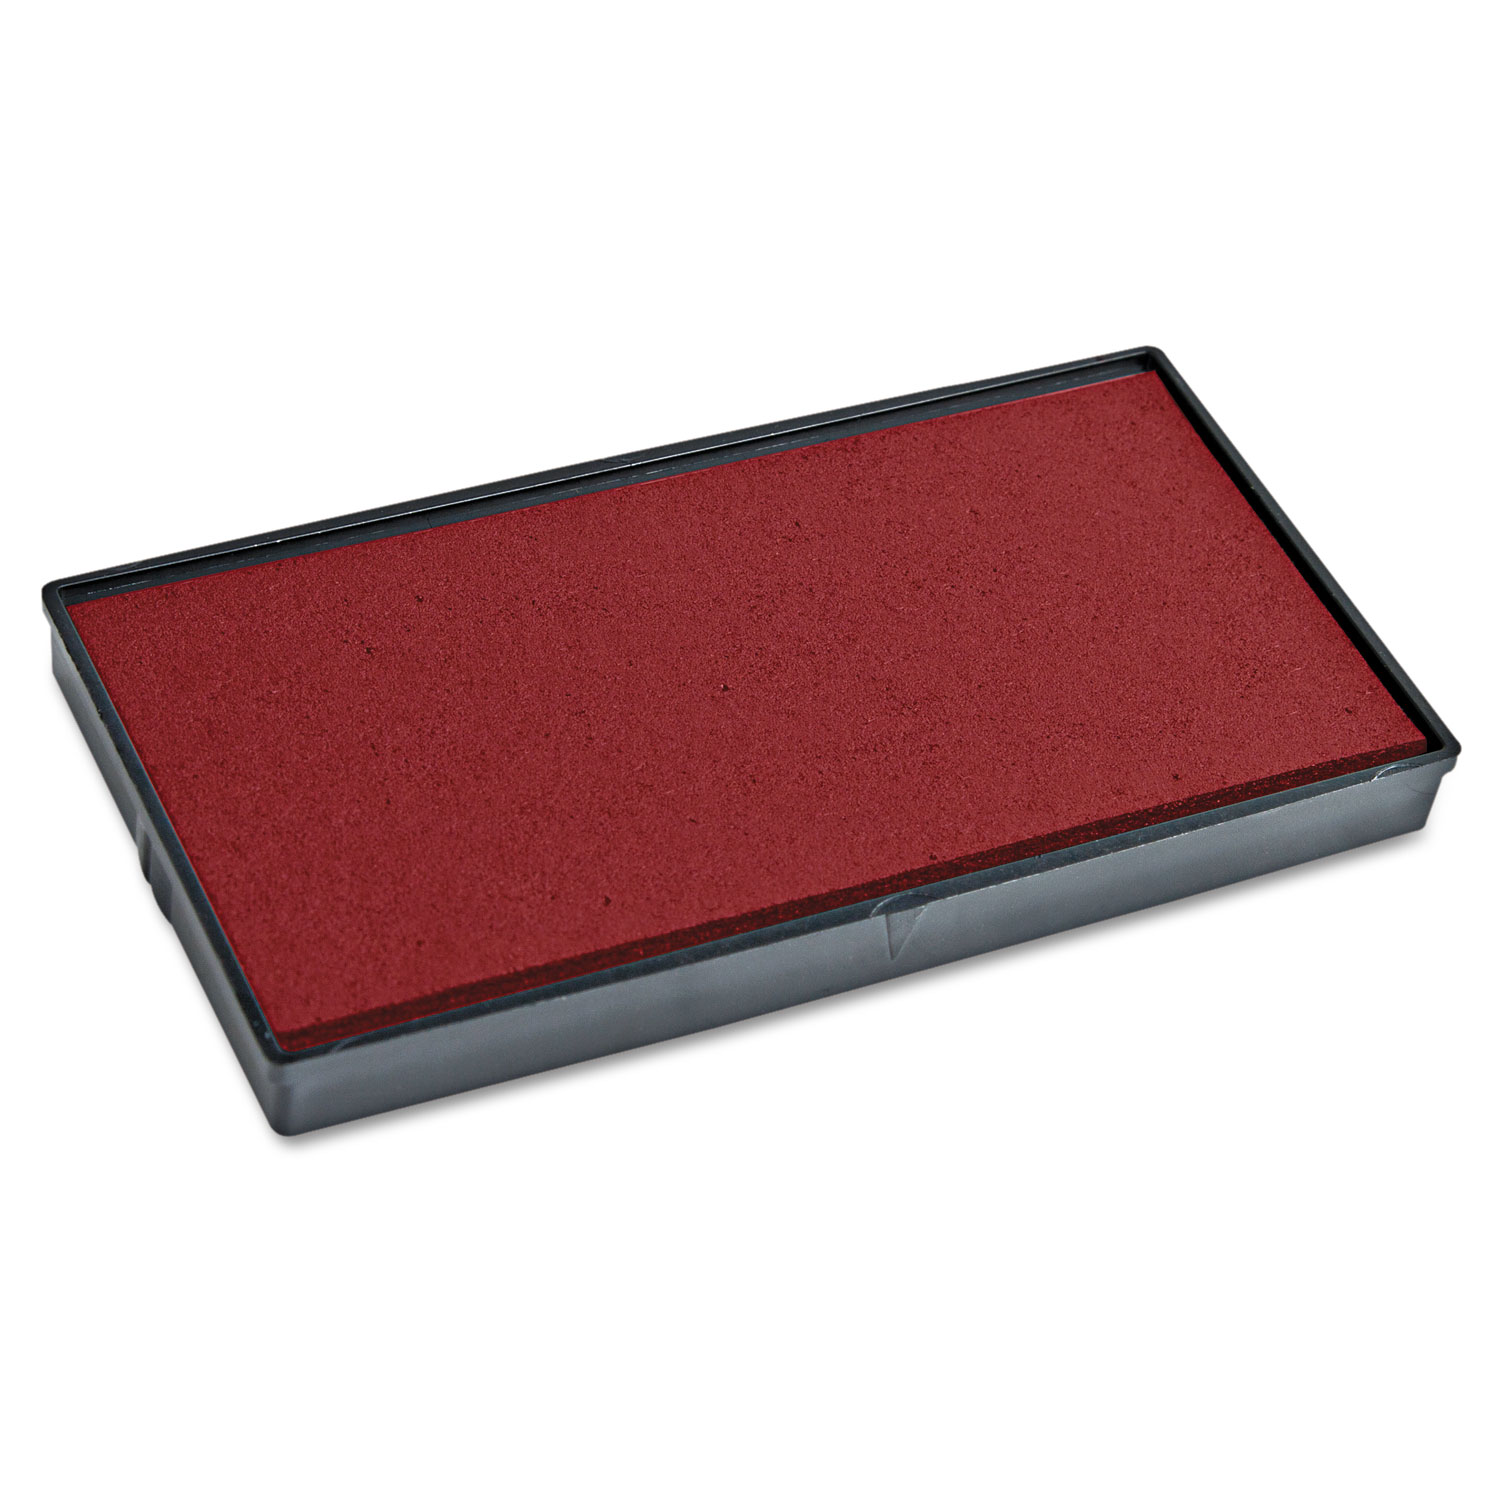 Replacement Ink Pad for 2000PLUS 1SI50P, Red COS065479